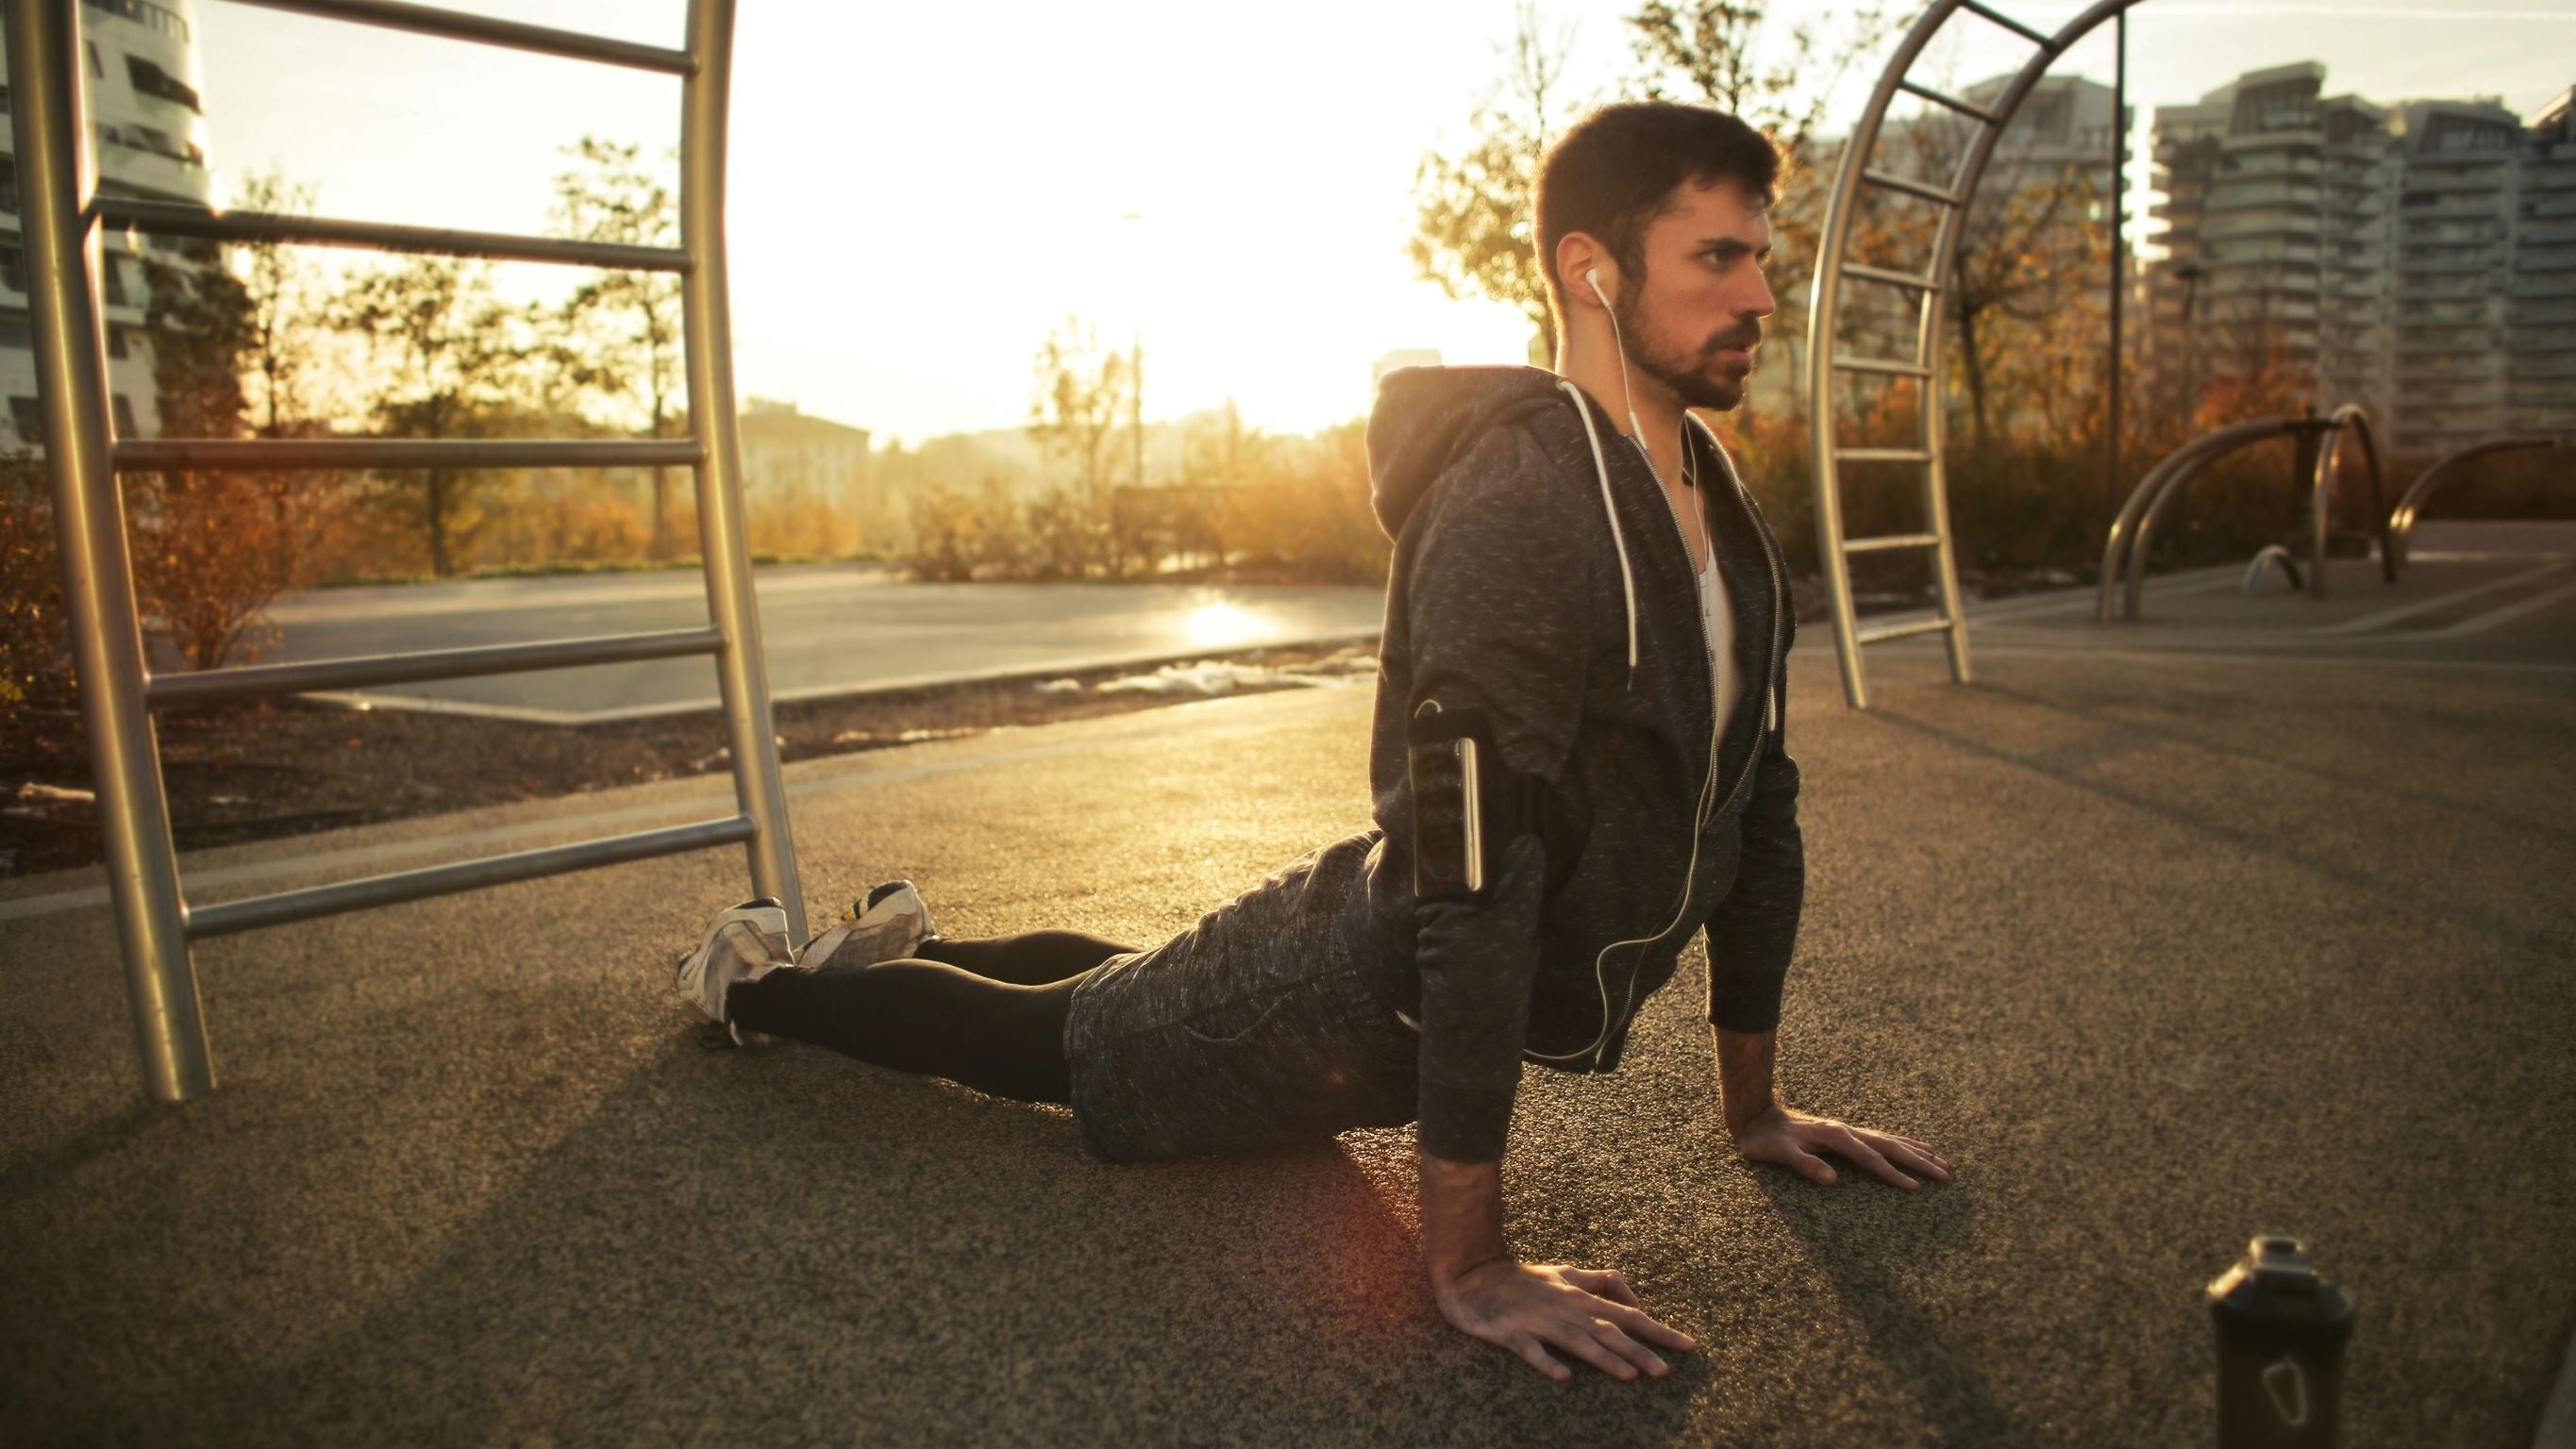 man stretching outside in the evening